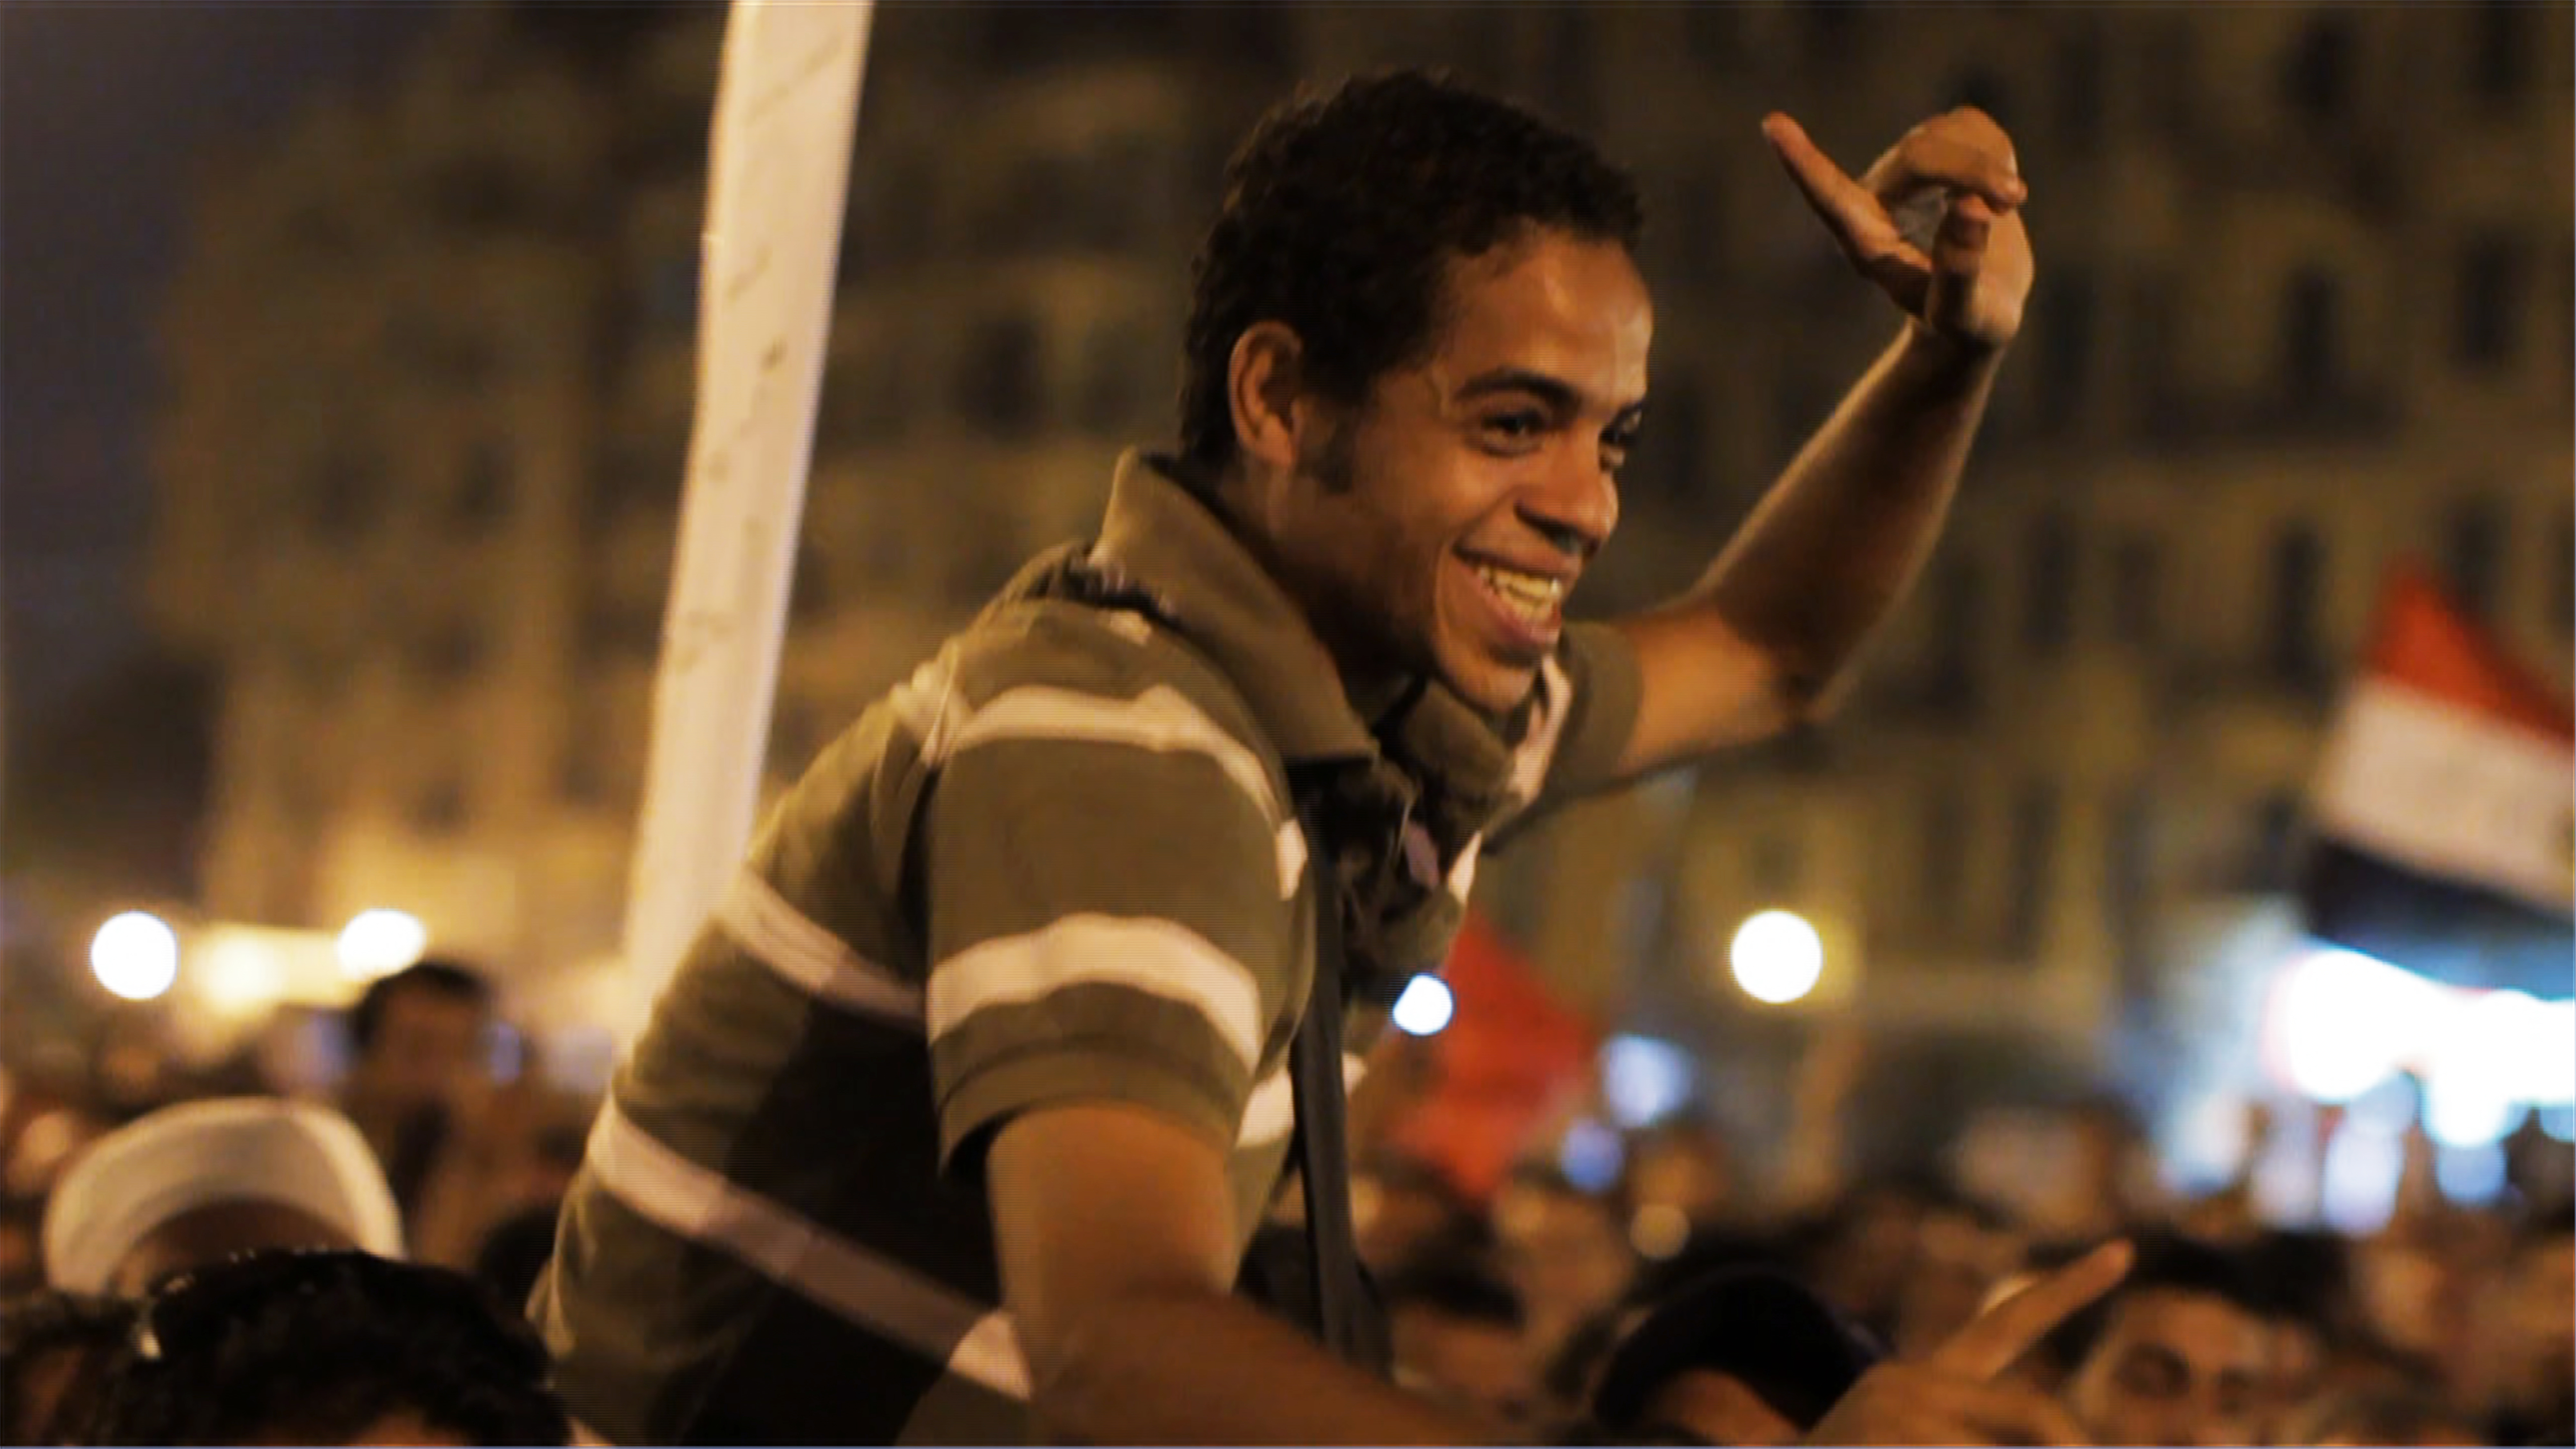 A young activist held aloft by Egyptians protesting